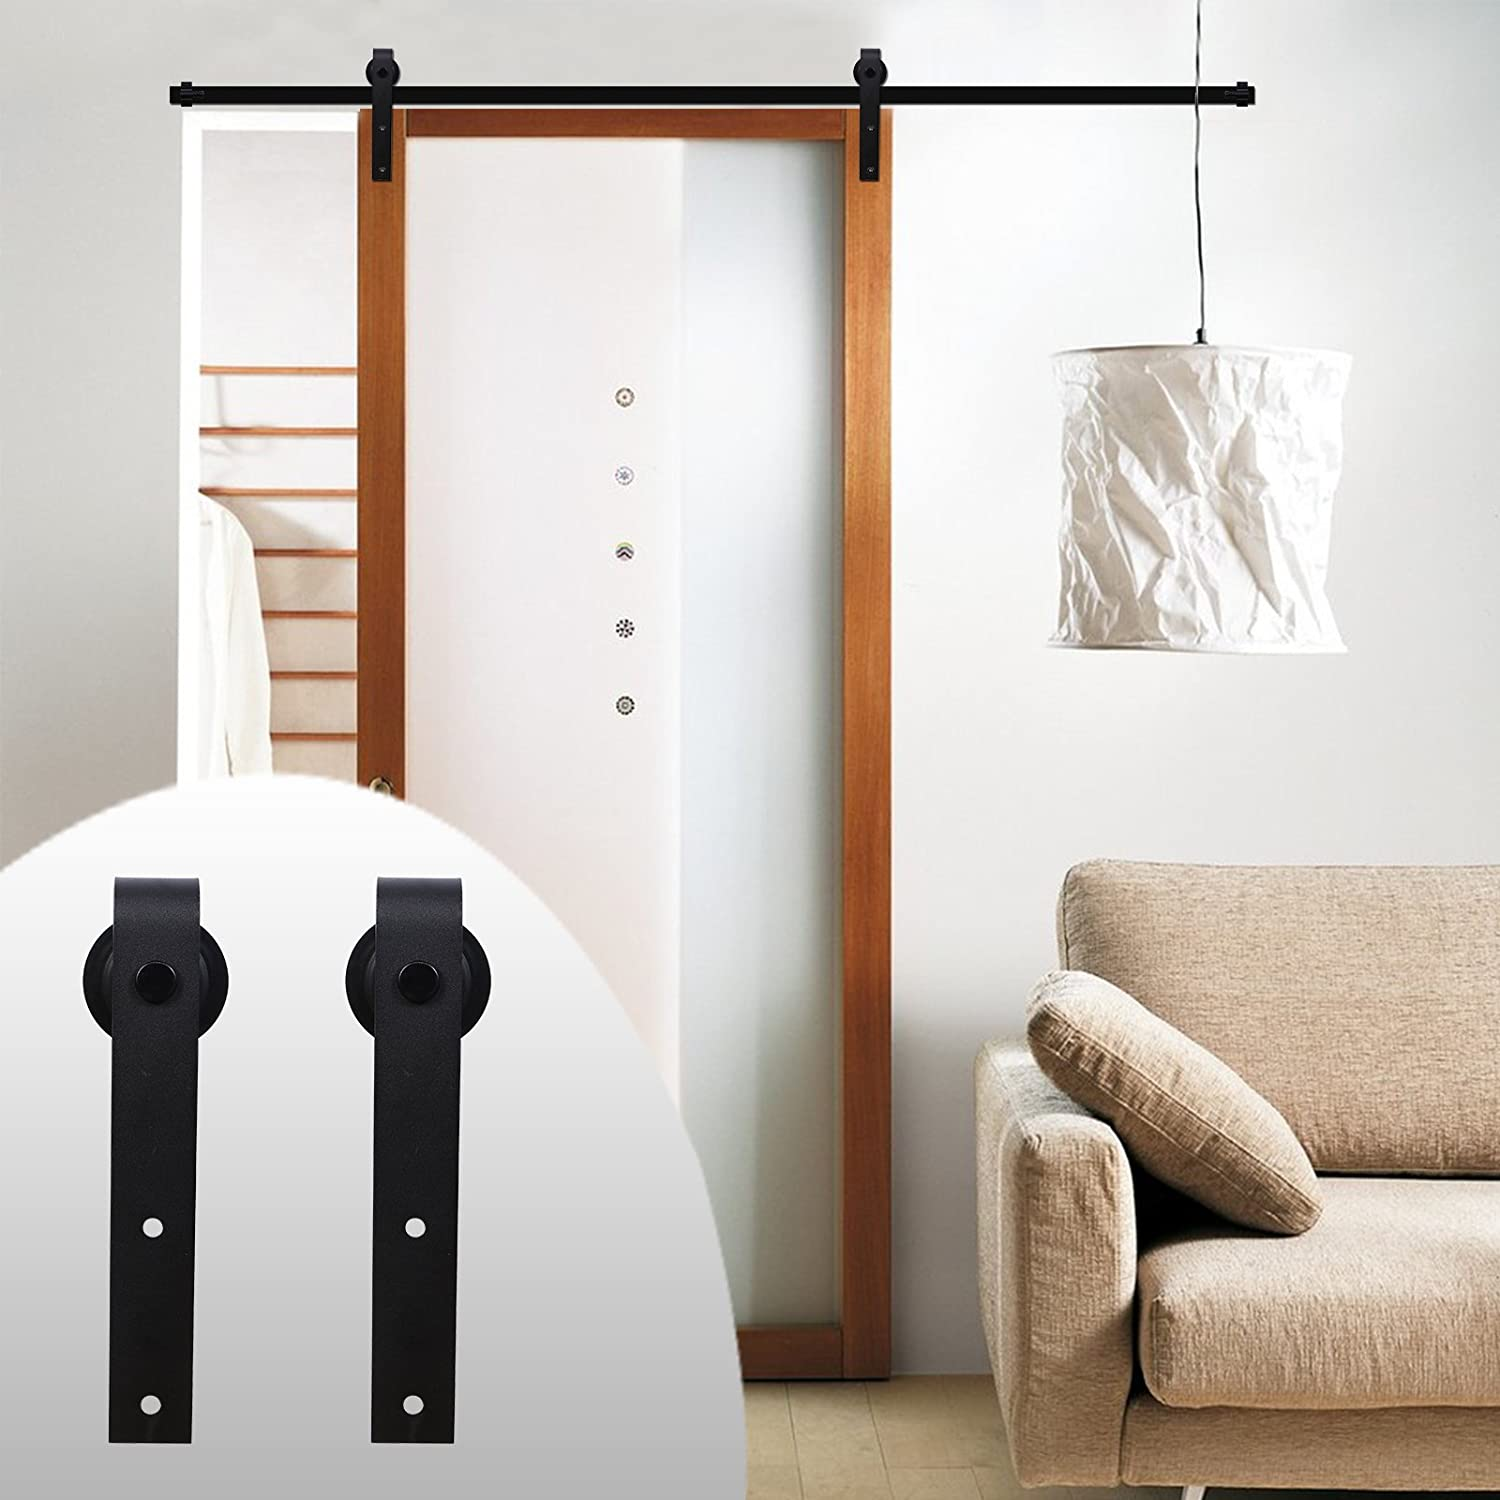 LWZH Now on sale 6.6FT Sliding Wood Barn Door Kit Single for Steel Sale special price Hardware